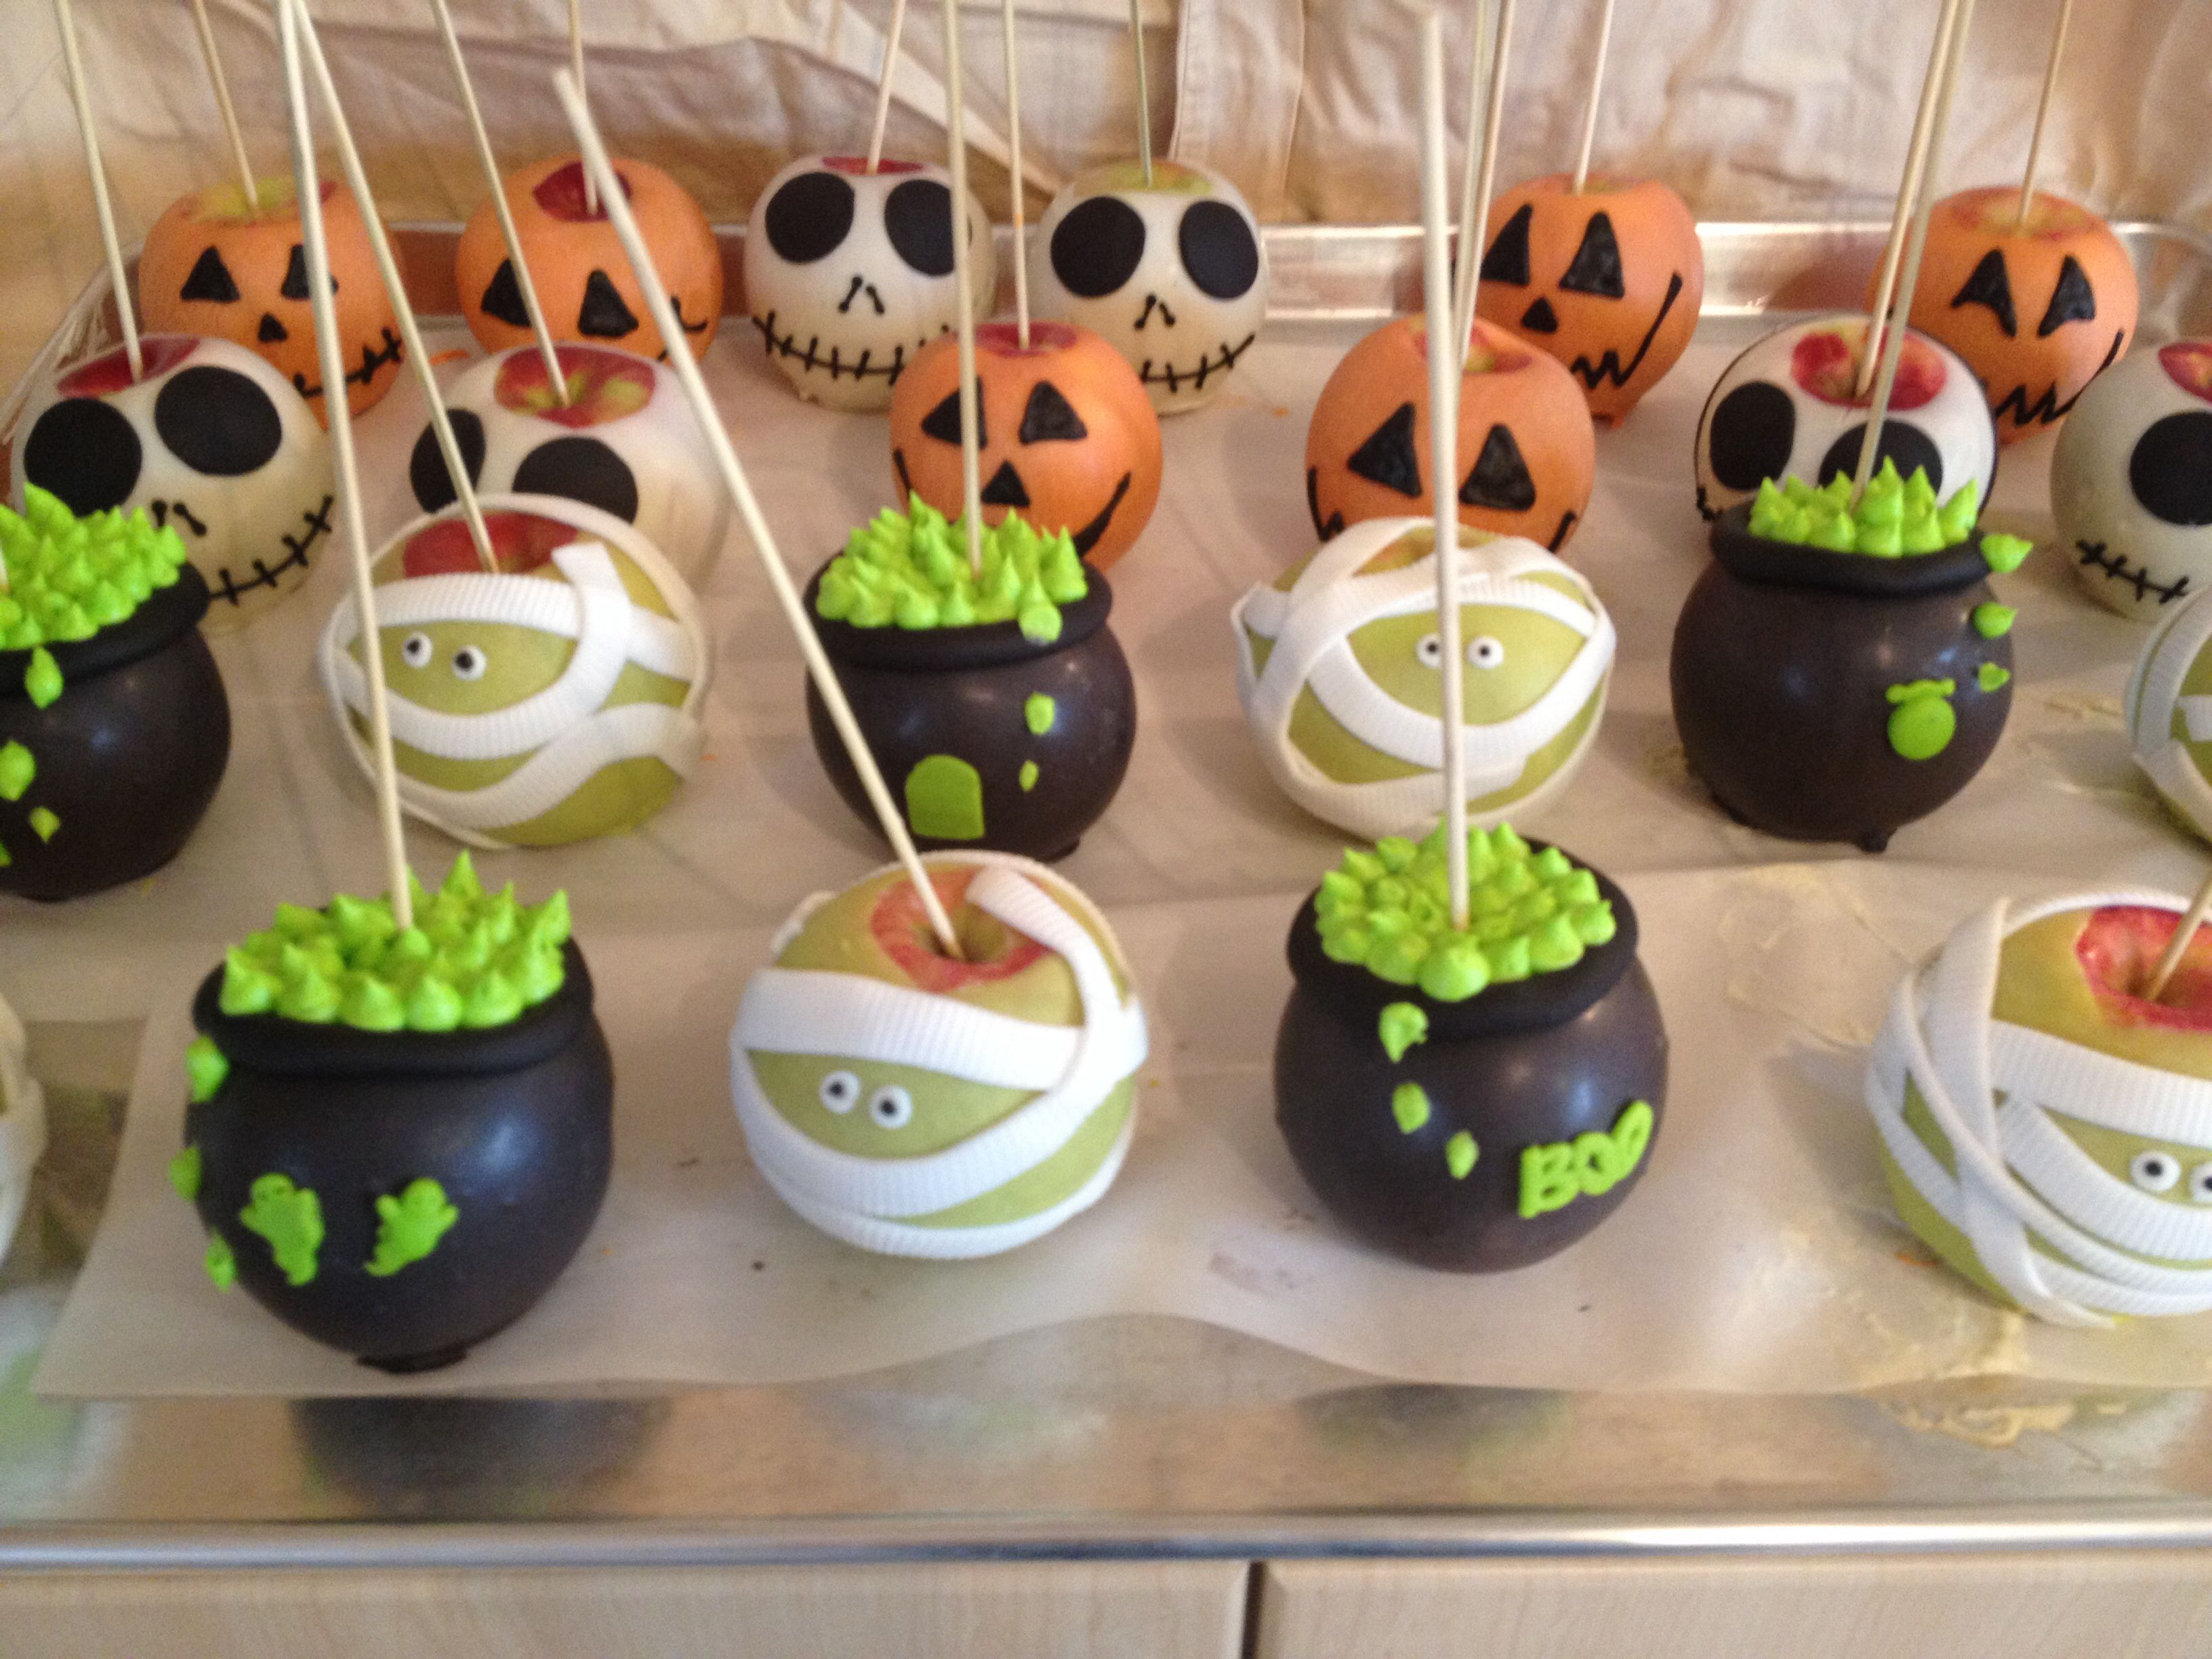 More Gourmet Candy Apples dressed up for Halloween